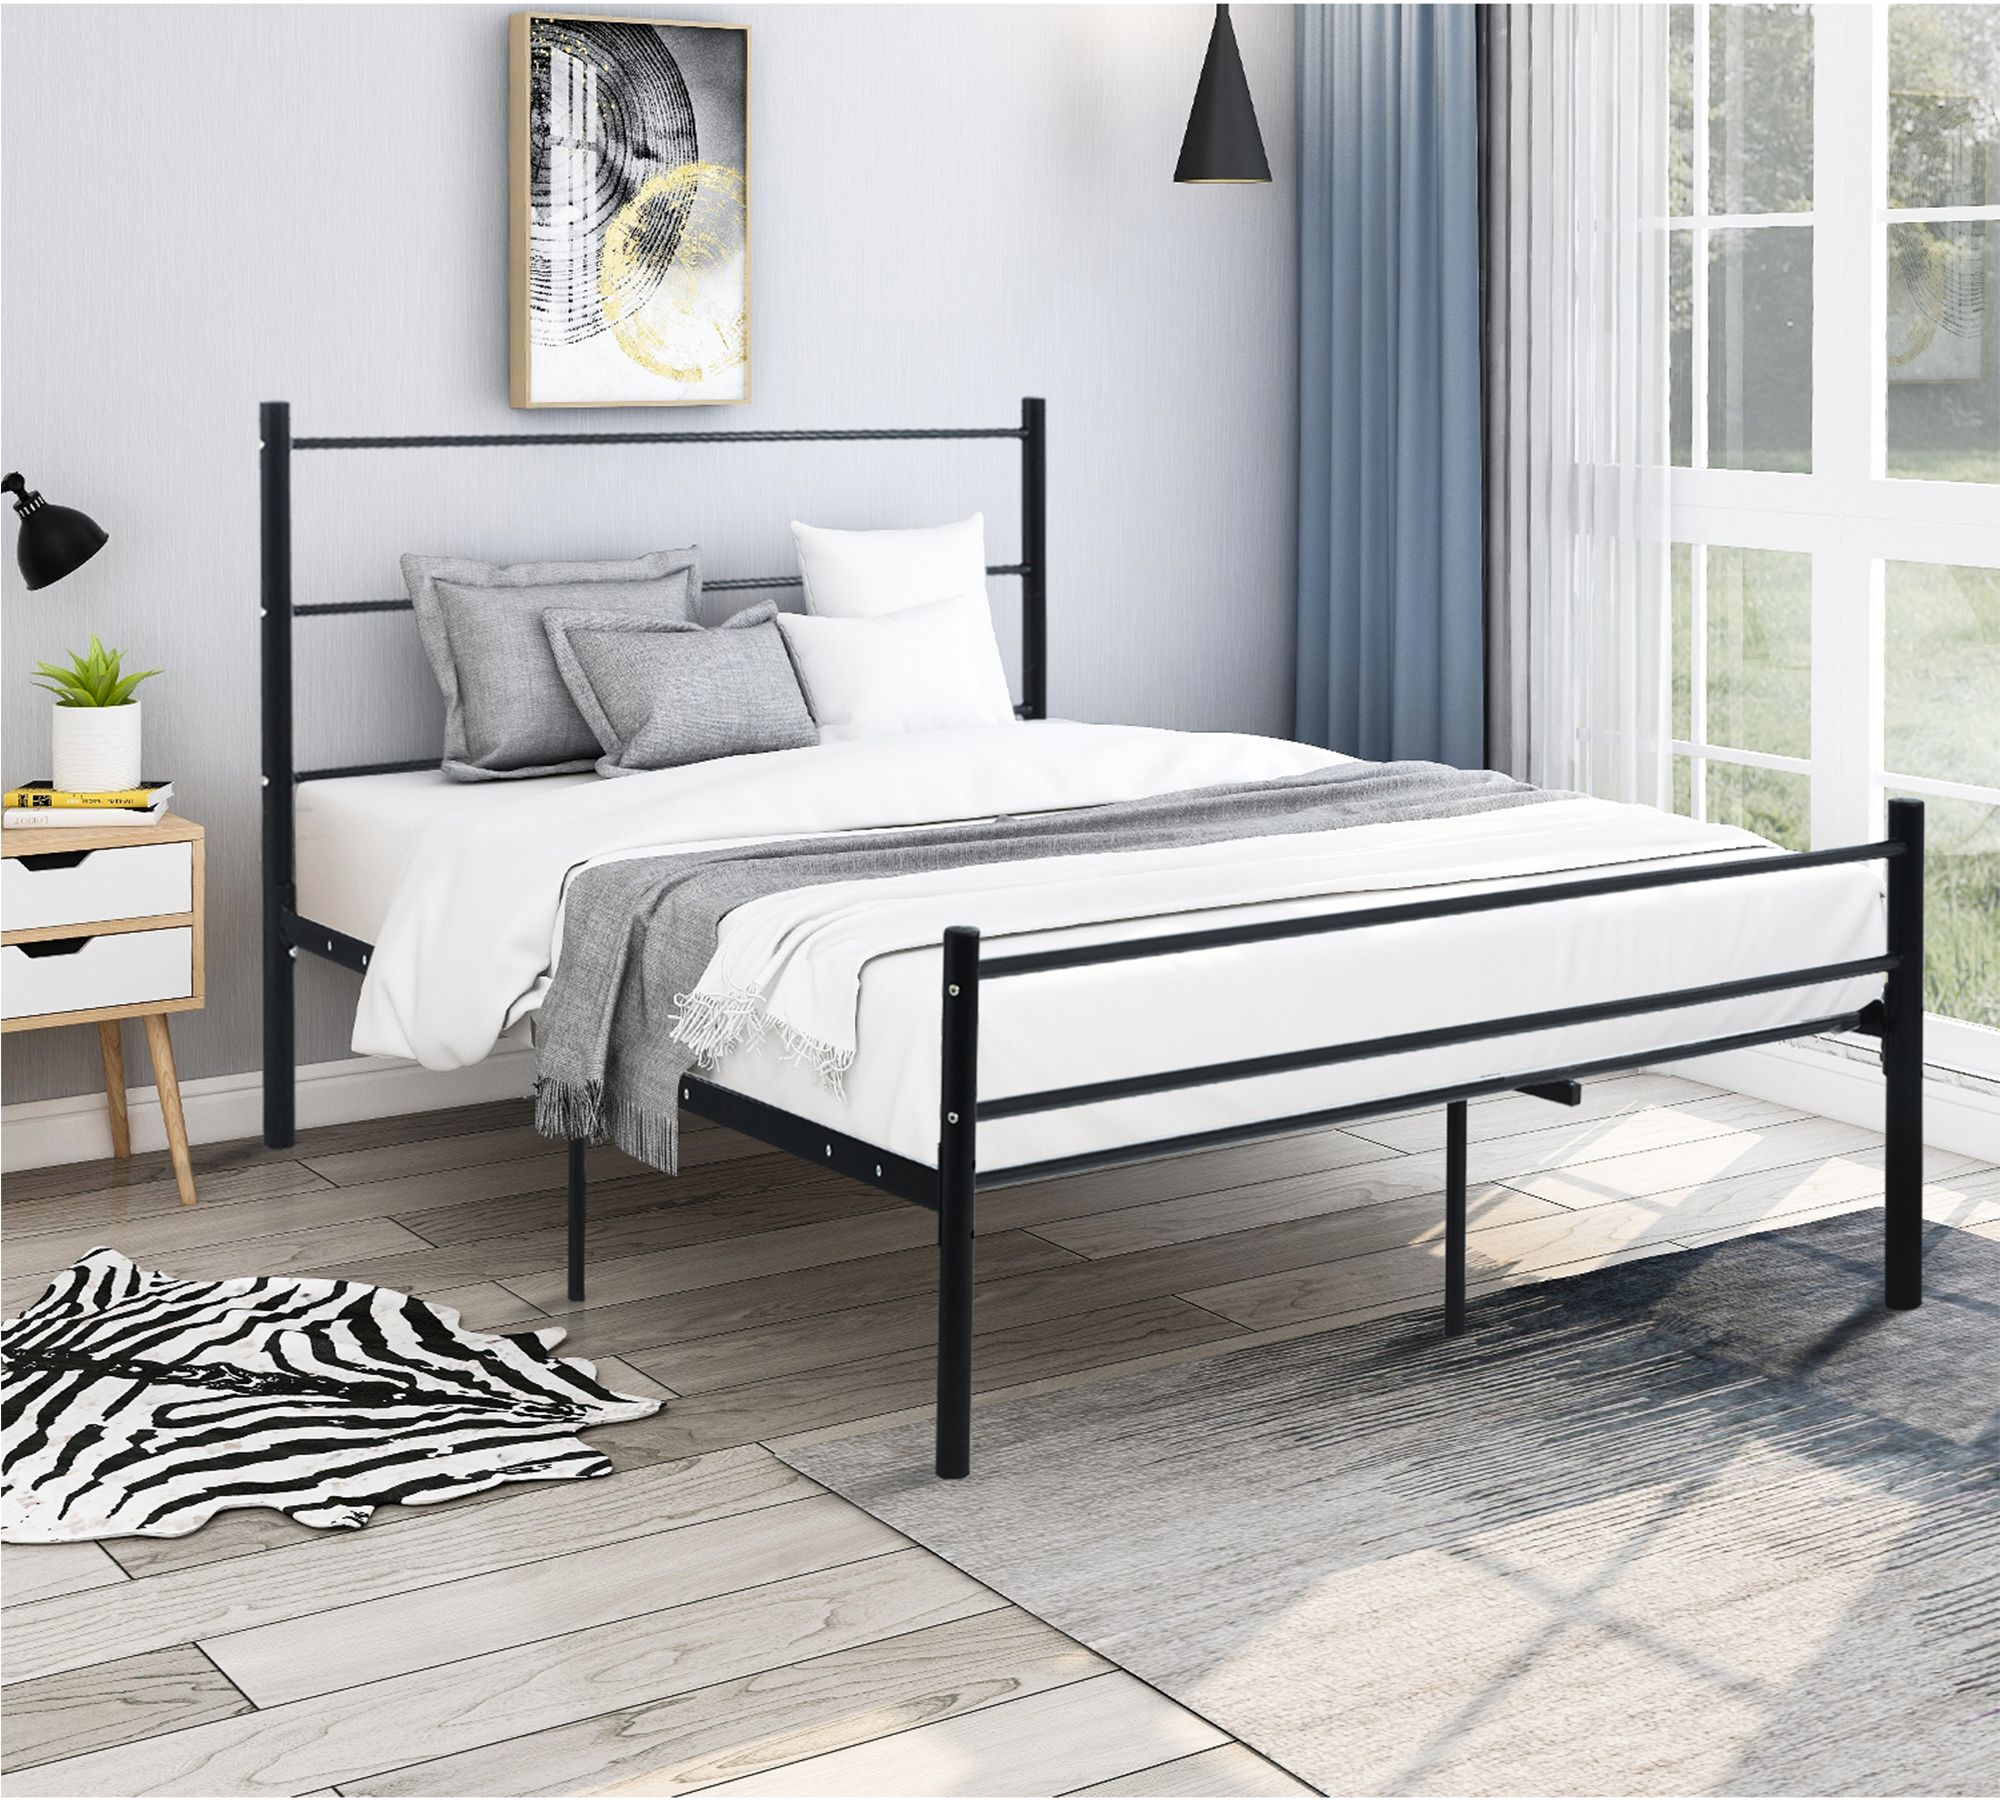 Home Bed frame, headboard, Metal platform bed, Headboard